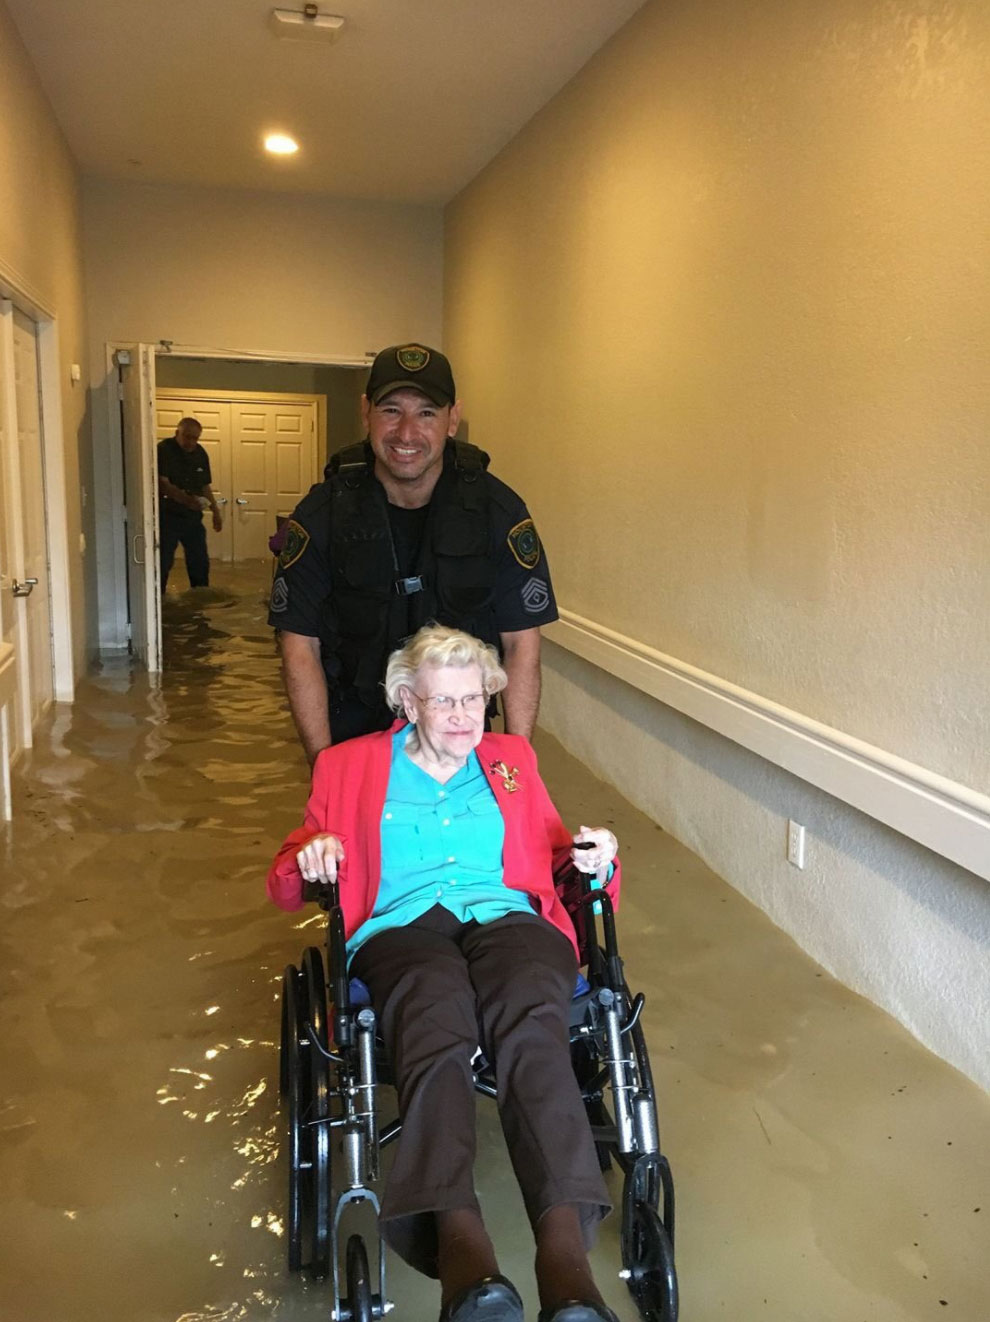 <div class='meta'><div class='origin-logo' data-origin='none'></div><span class='caption-text' data-credit='houstonpolice/Twitter'>The Houston Police rescues a woman stranded by the flood.</span></div>